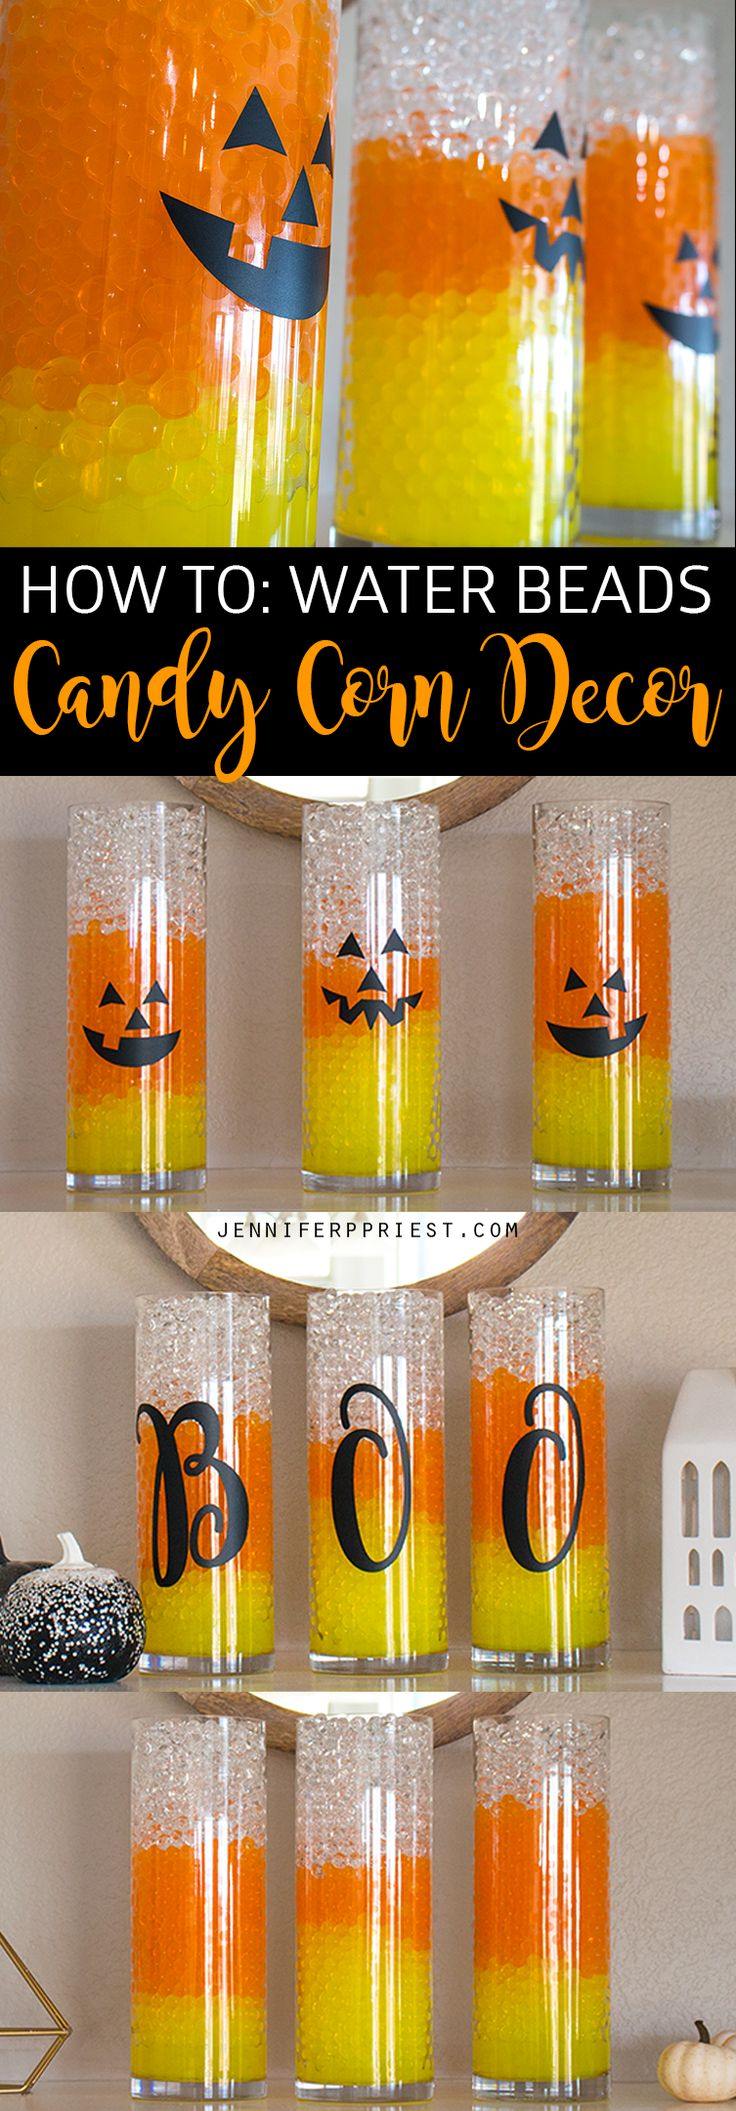 candy corn water beads halloween vase filler idea halloween diyhalloween stuffhalloween decorationshappy - Homemade Halloween Centerpieces